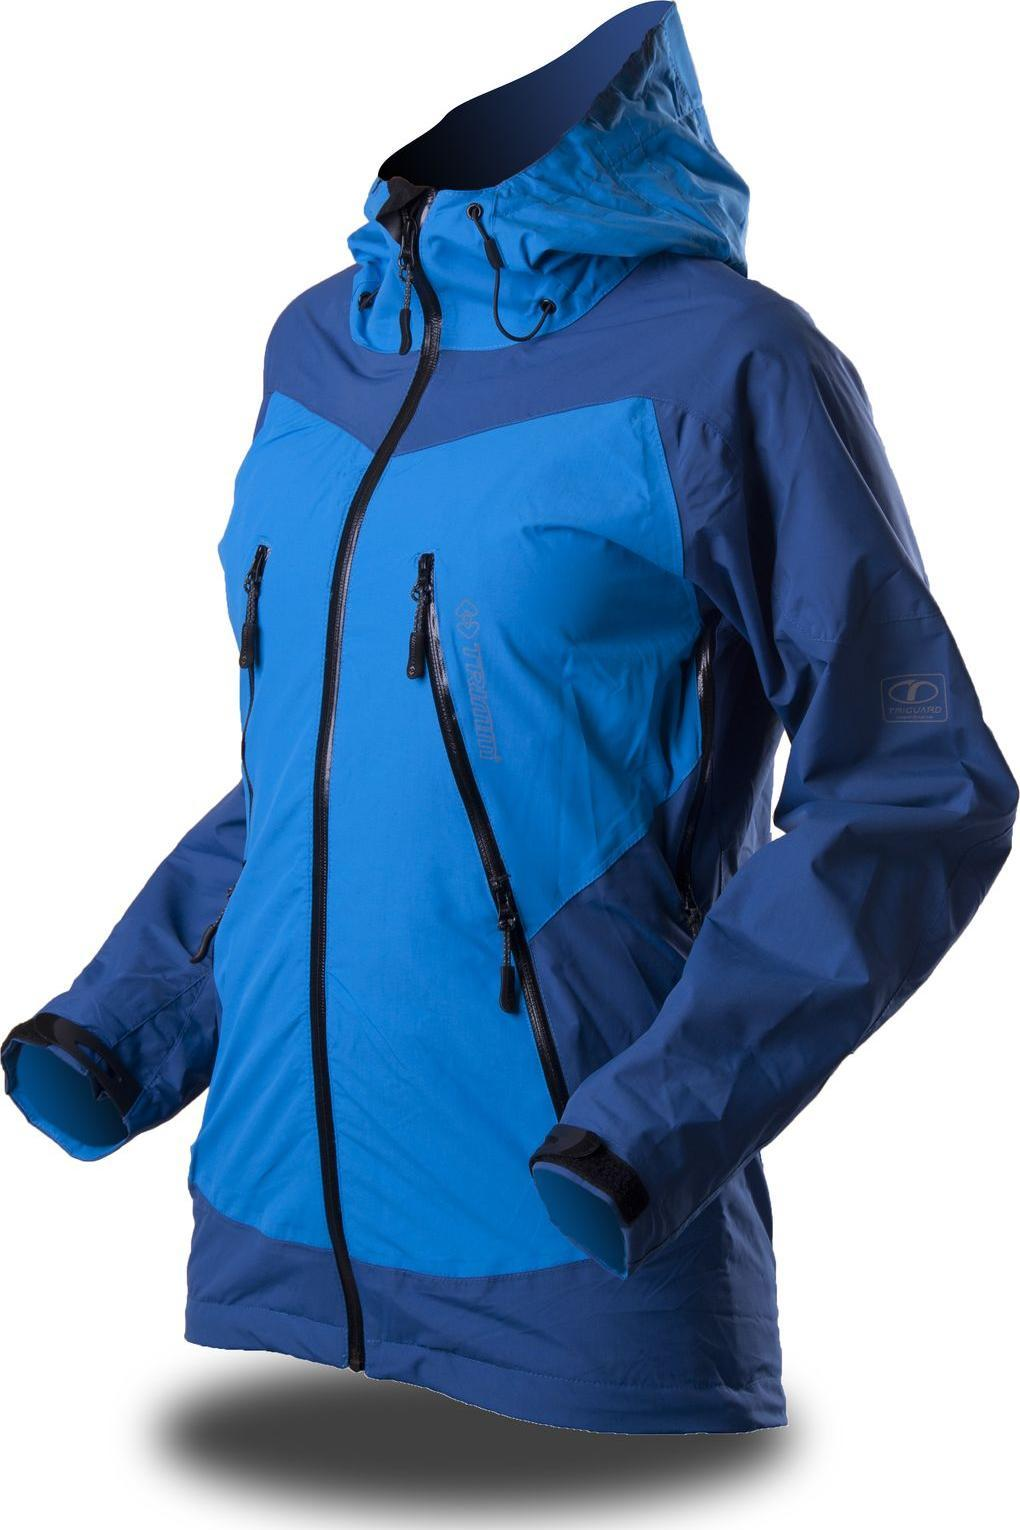 Trimm Patagonia Lady sea blue Velikost: L